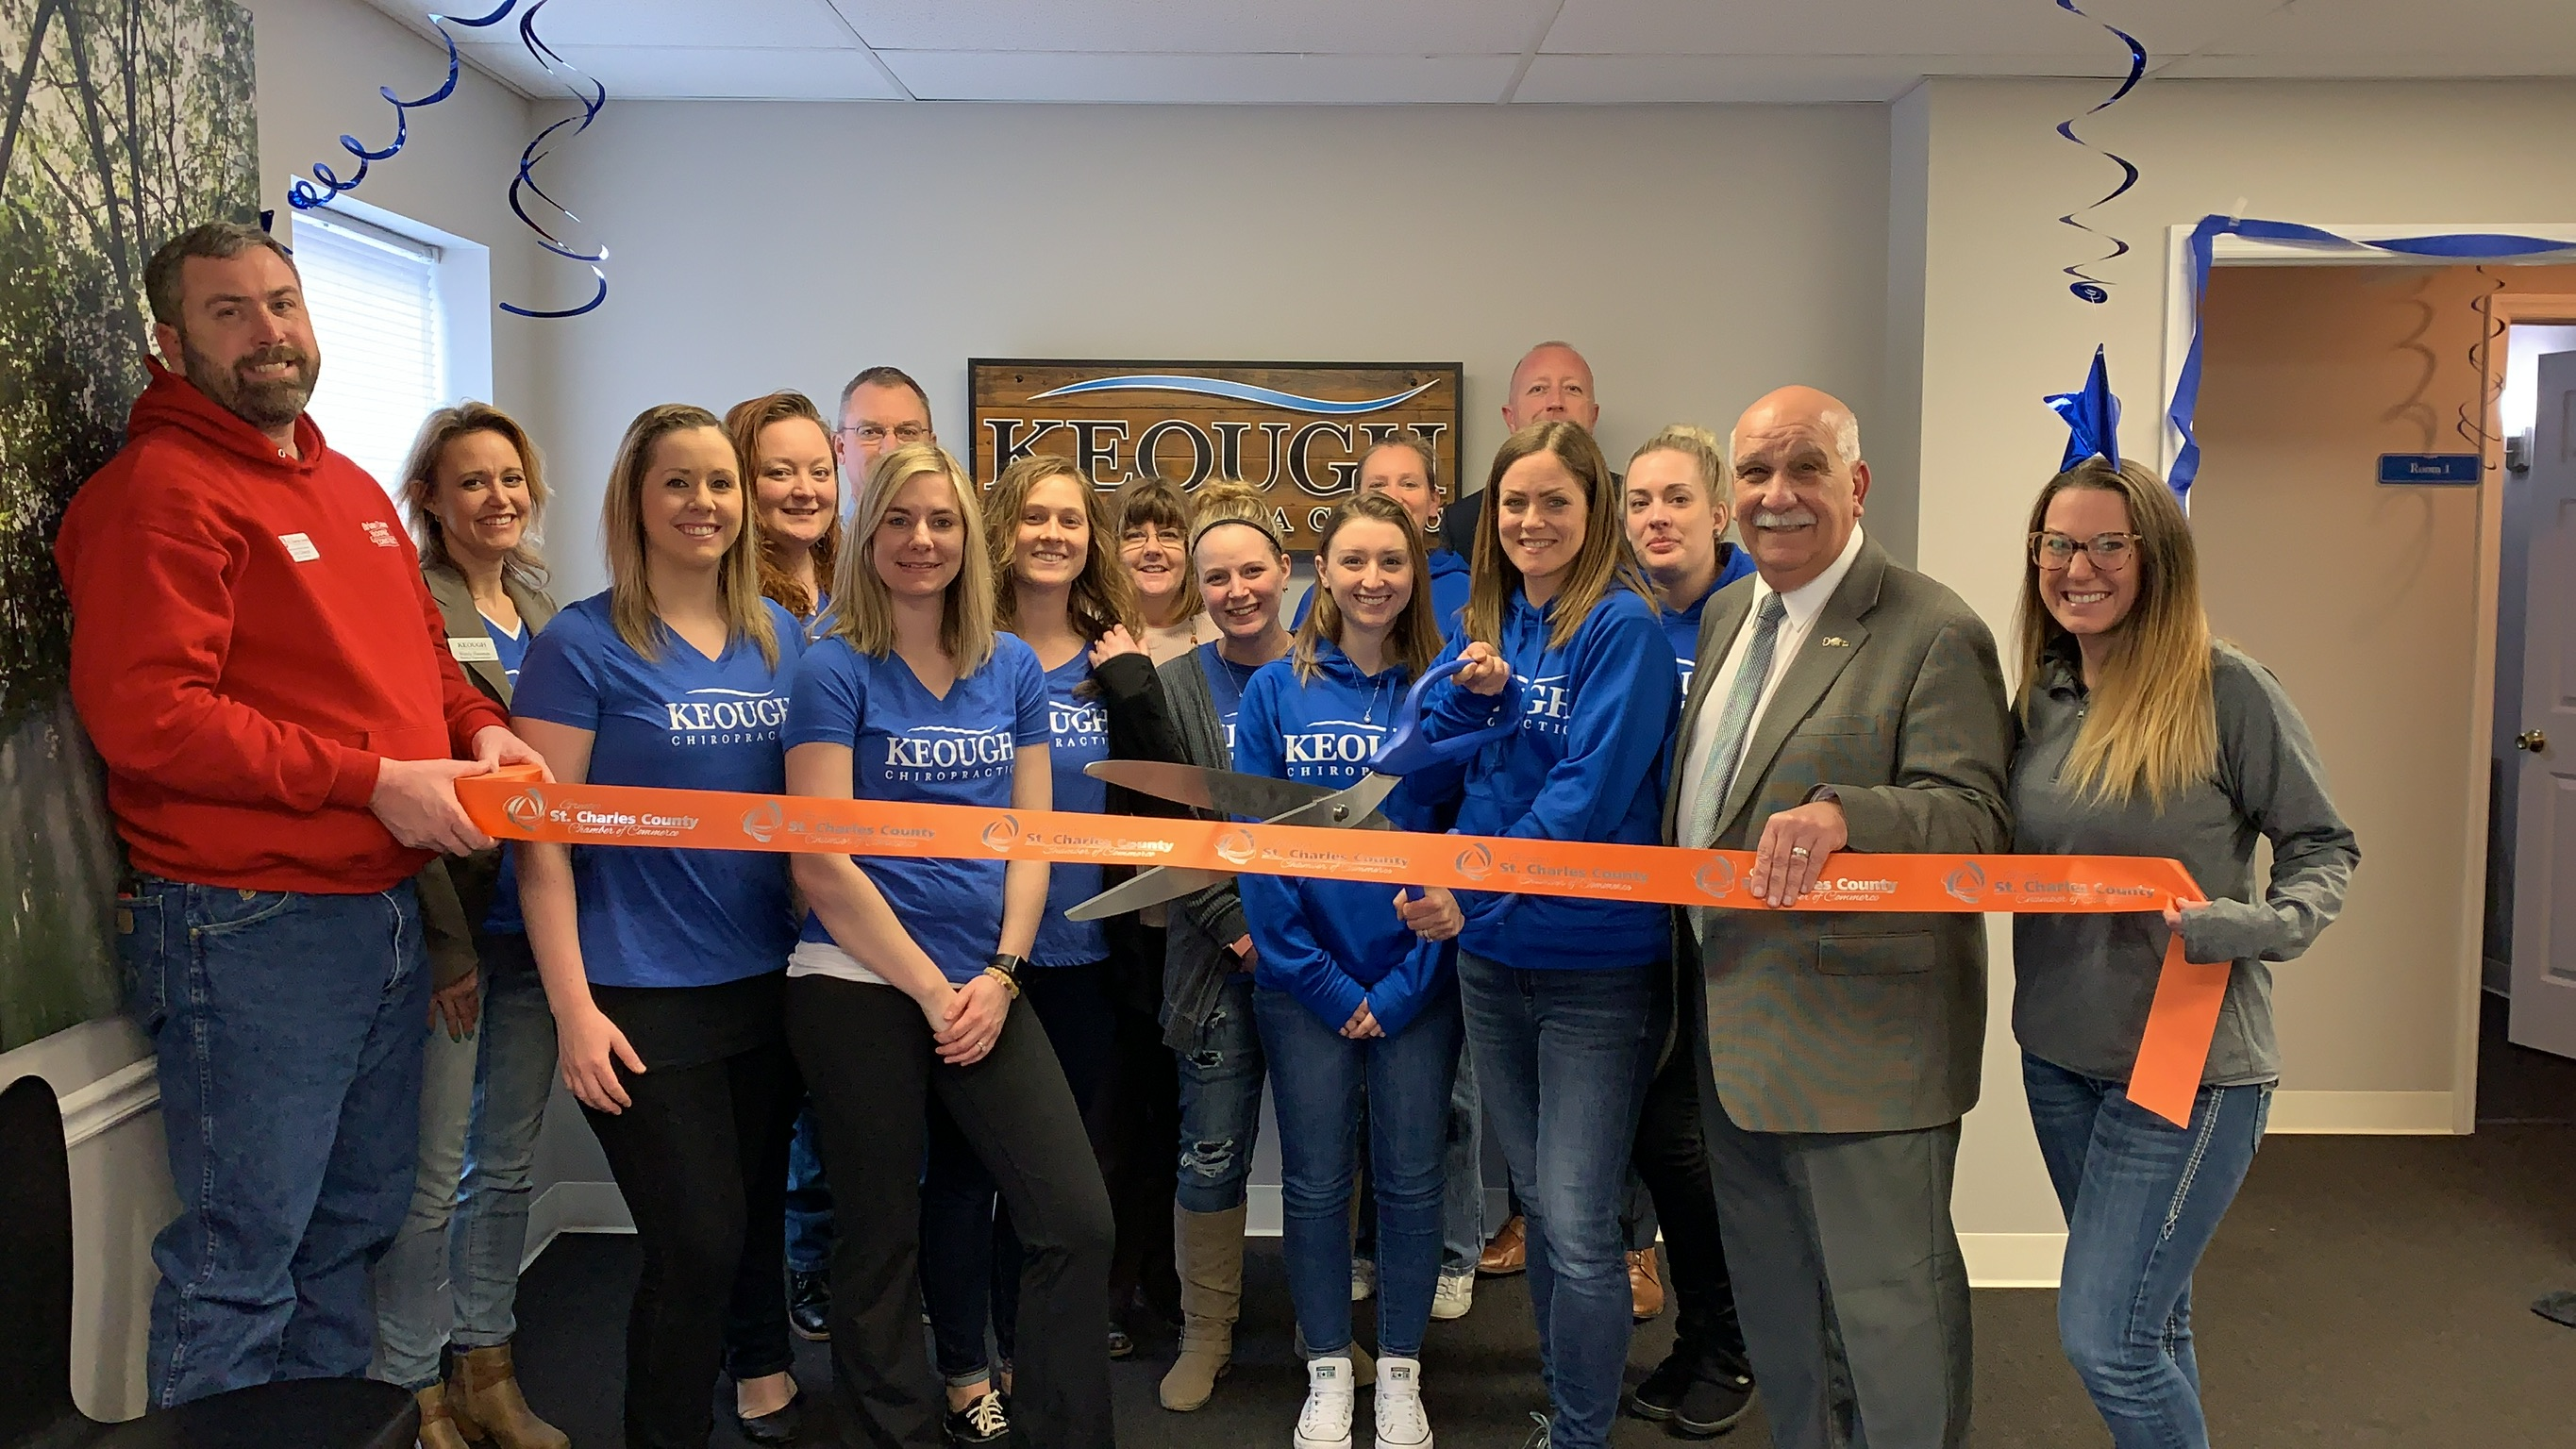 Image for Keough Chiropractic Celebrates 10 Year Anniversary With a Ribbon Cutting